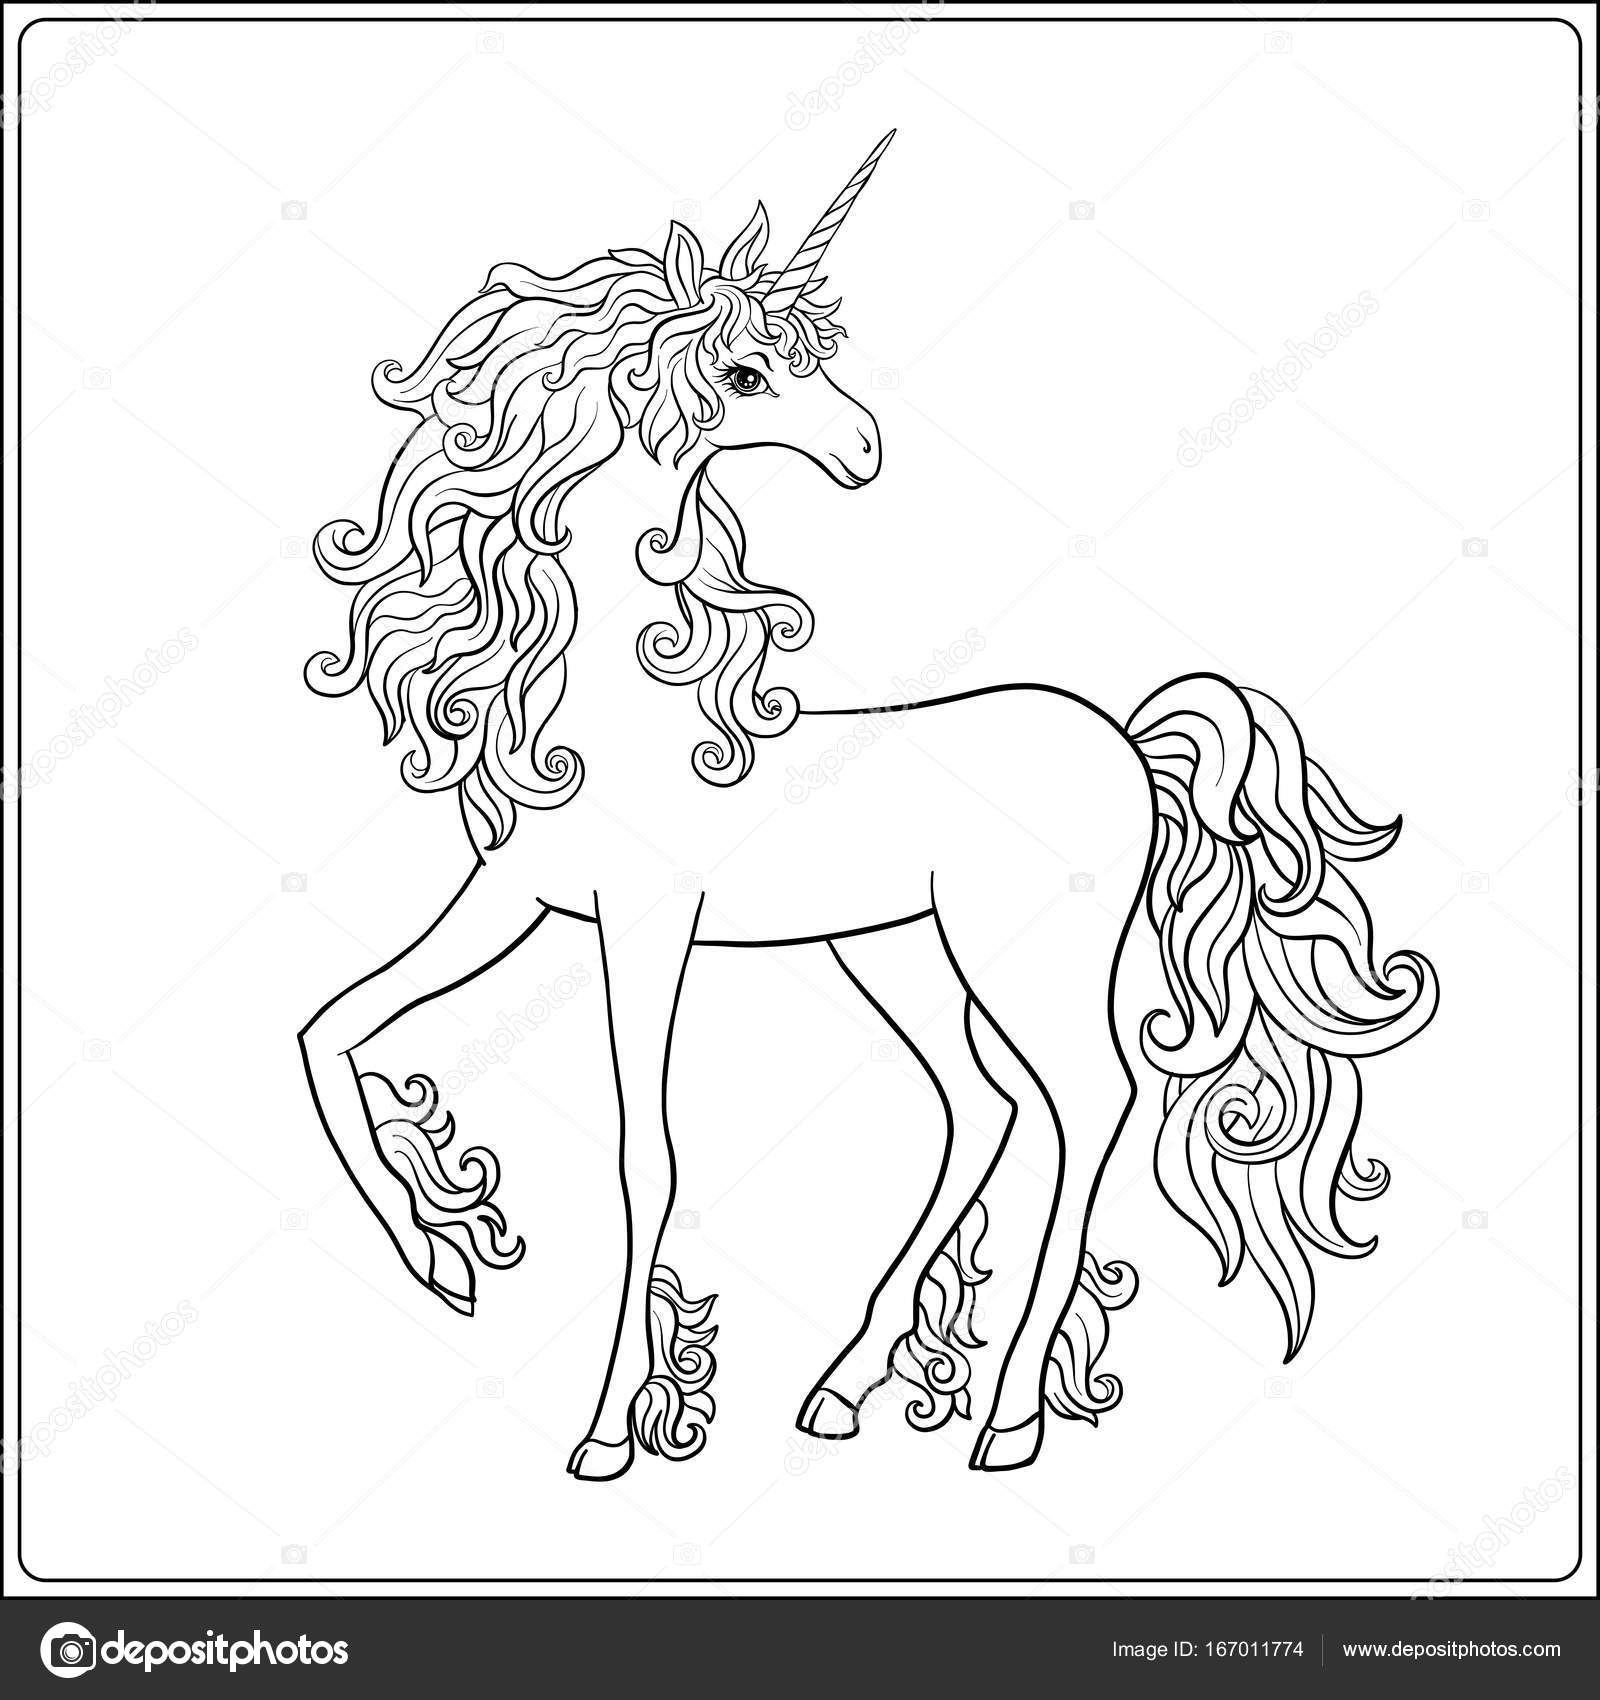 Unicorn Outline Drawing Coloring Page Coloring Book For Adult